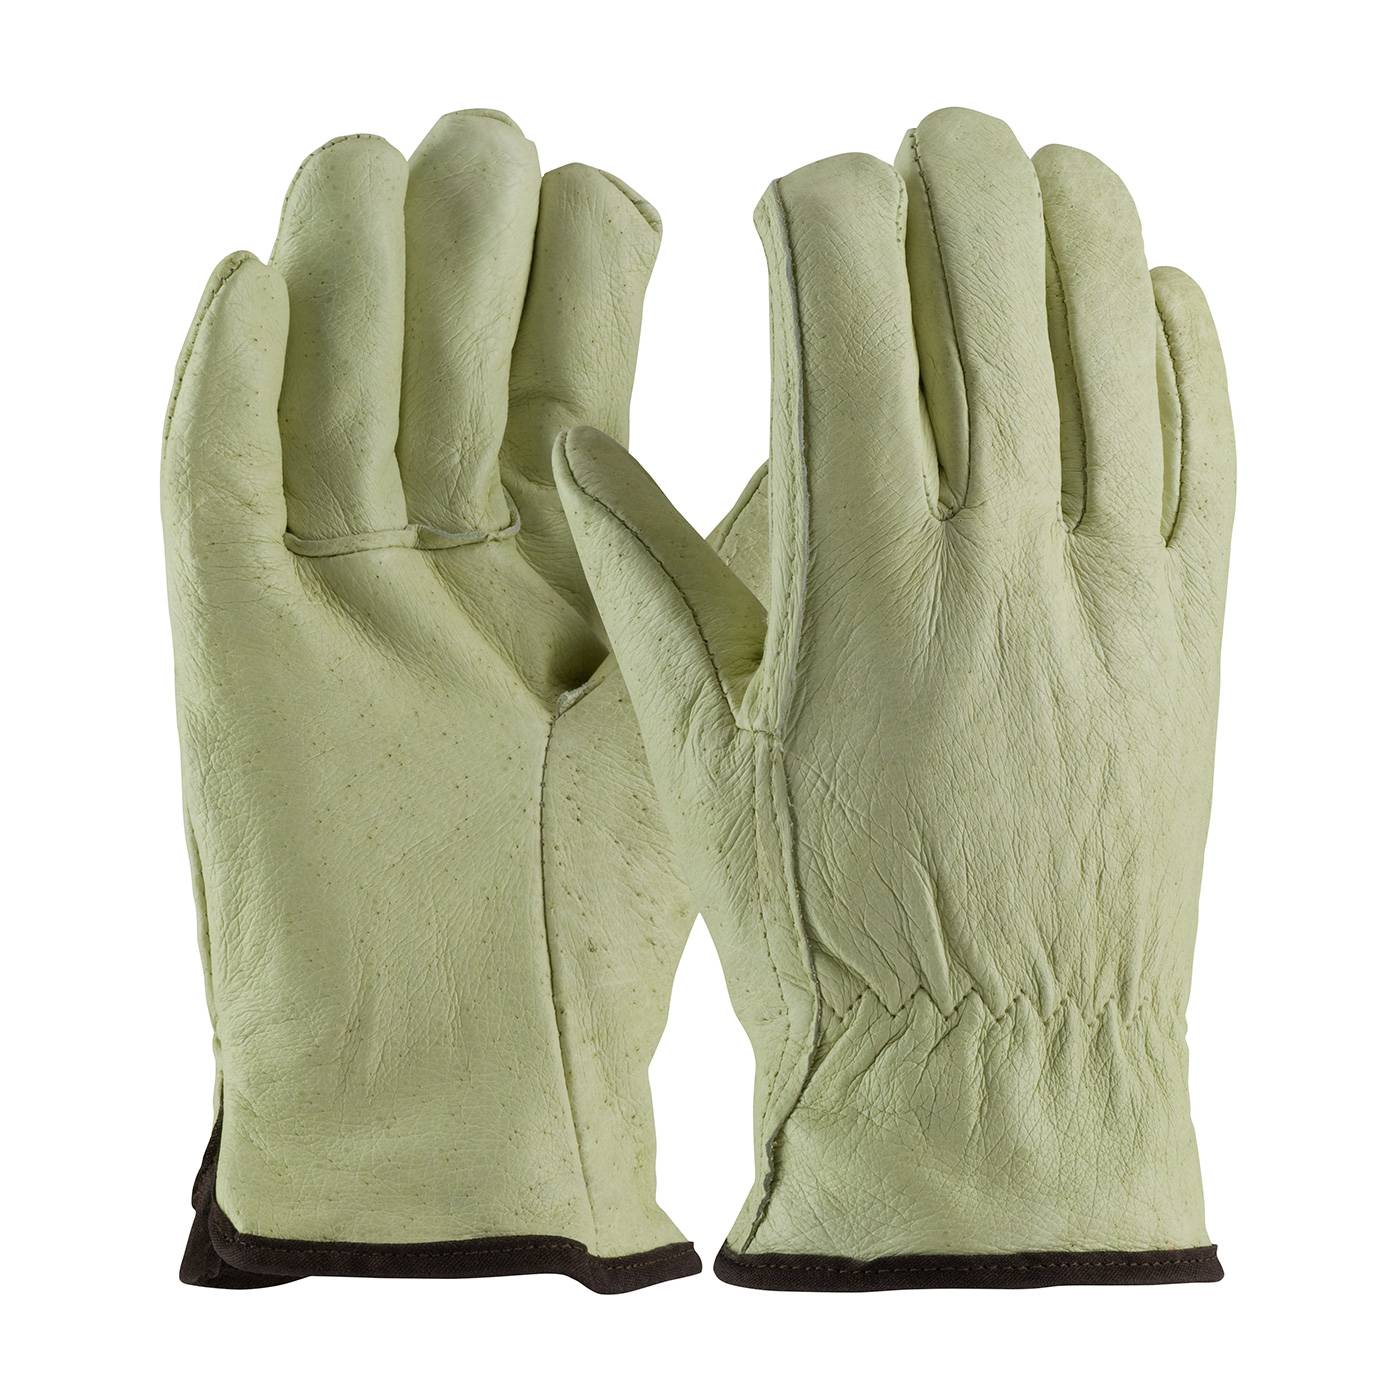 77-418 PIP® Top Grain Pigskin Leather Glove with White Thermal Lining - Straight Thumb